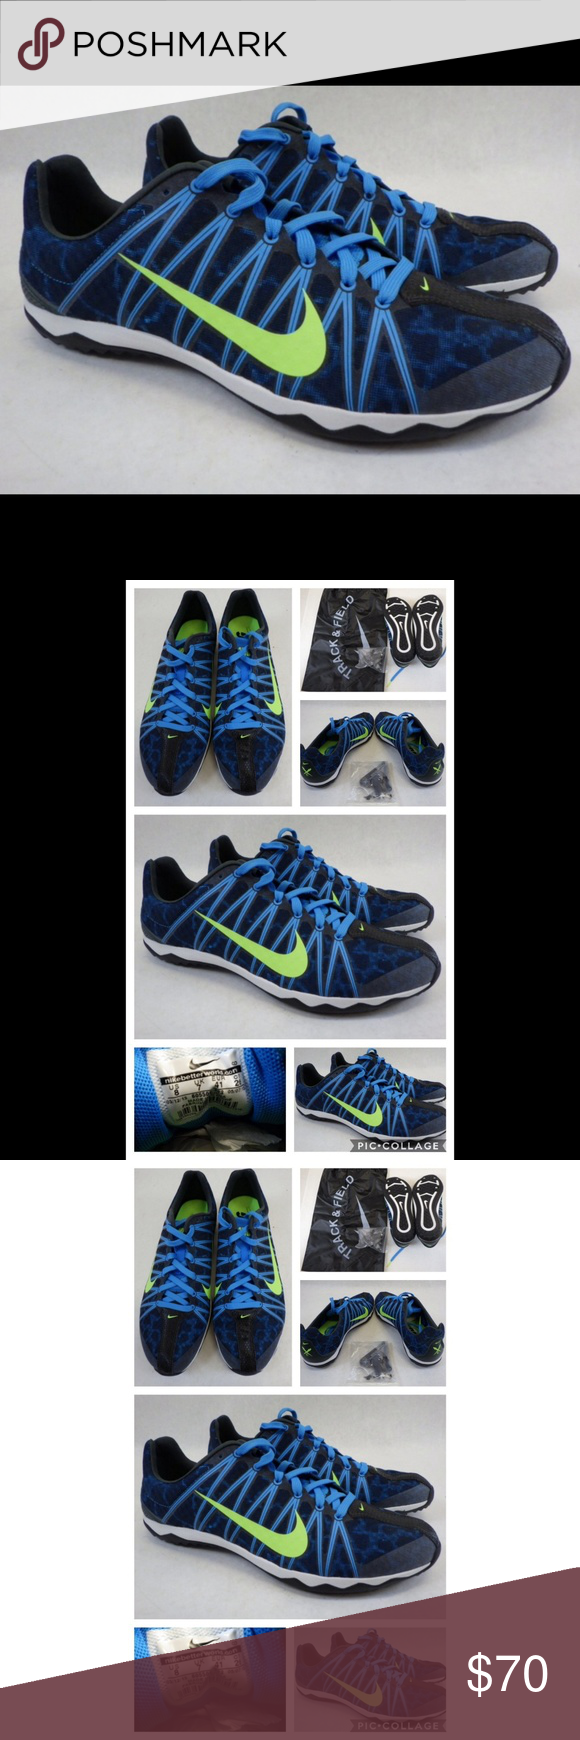 6a7c68eedca76 NWT Nike Zoom Rival XC Track Field Shoes Size 8 NEW WITH TAGS Nike Cross  Country. Visit. February 2019